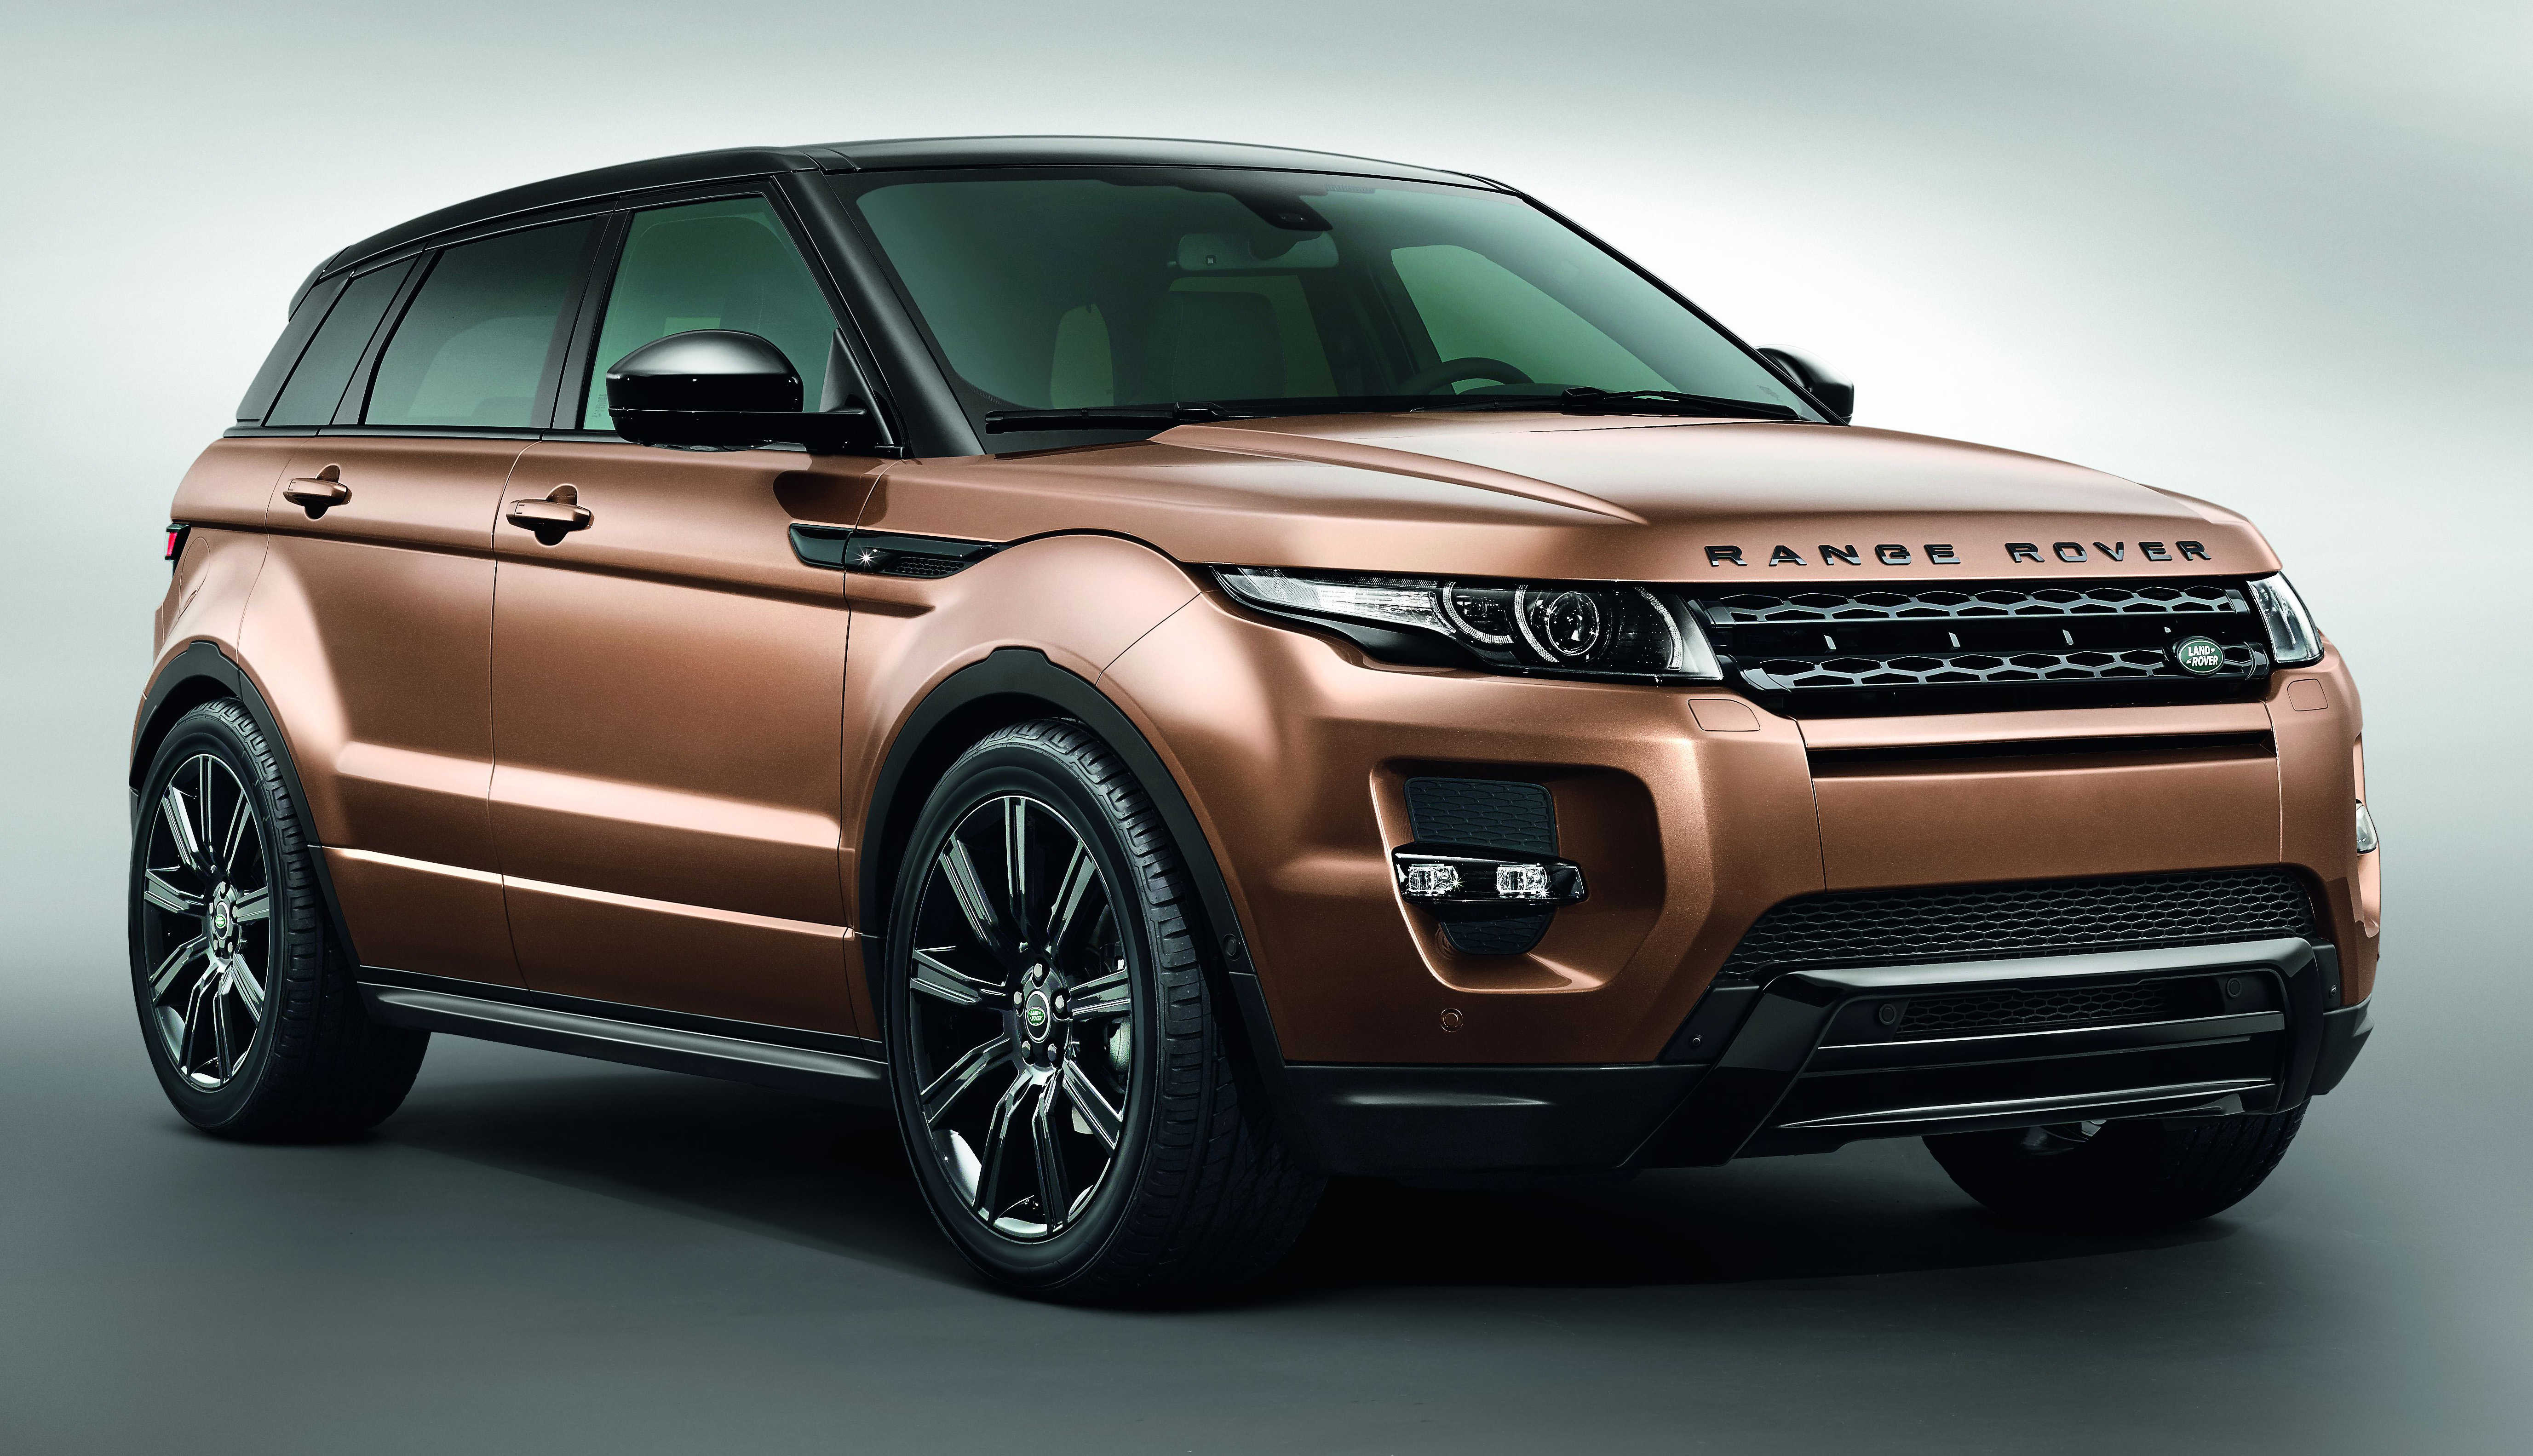 Land Rover Range Rover Evoque hd specifications